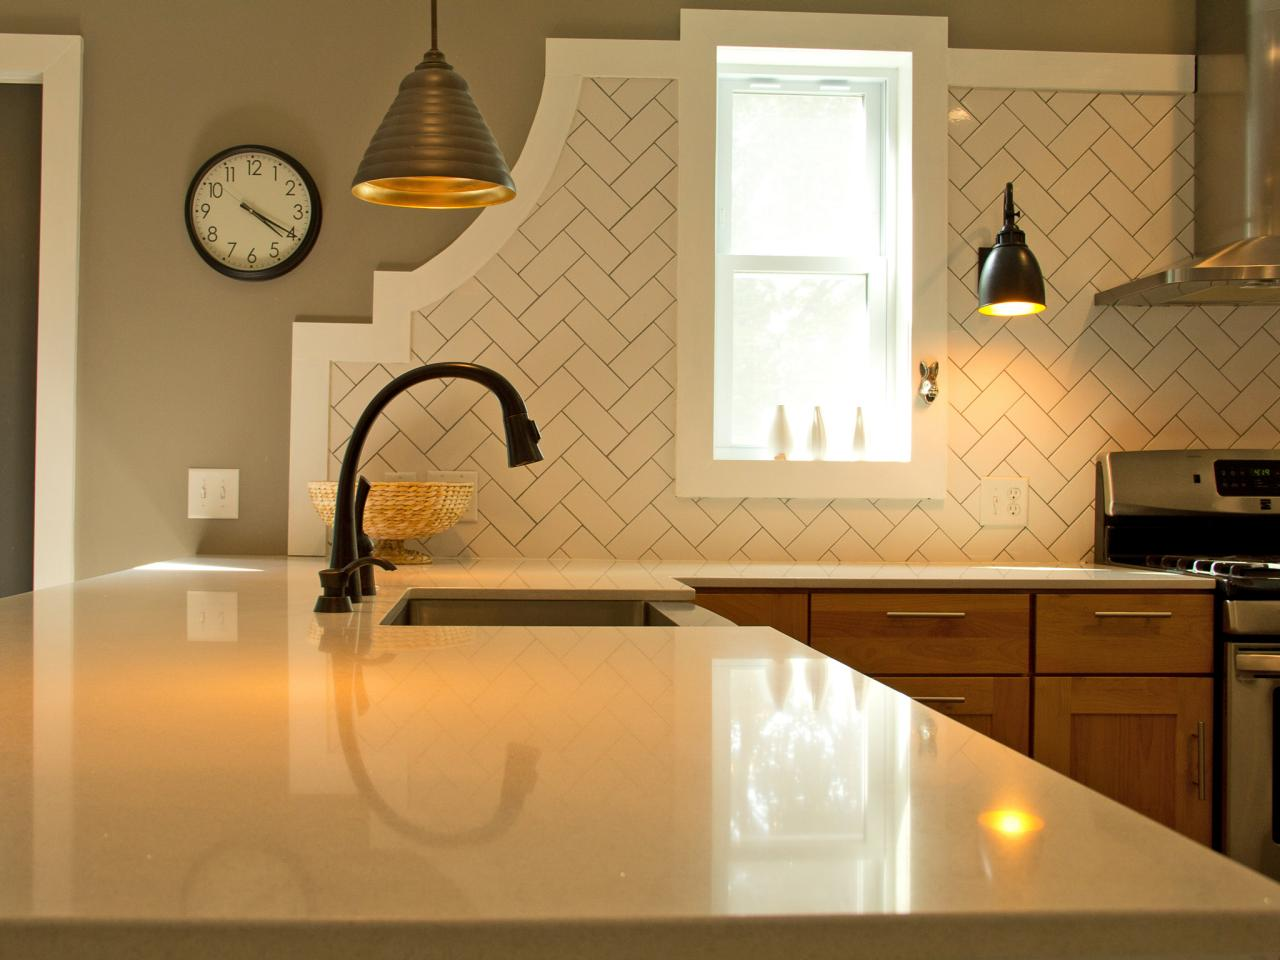 Ceramic tile backsplashes pictures ideas tips from hgtv hgtv tags dailygadgetfo Image collections